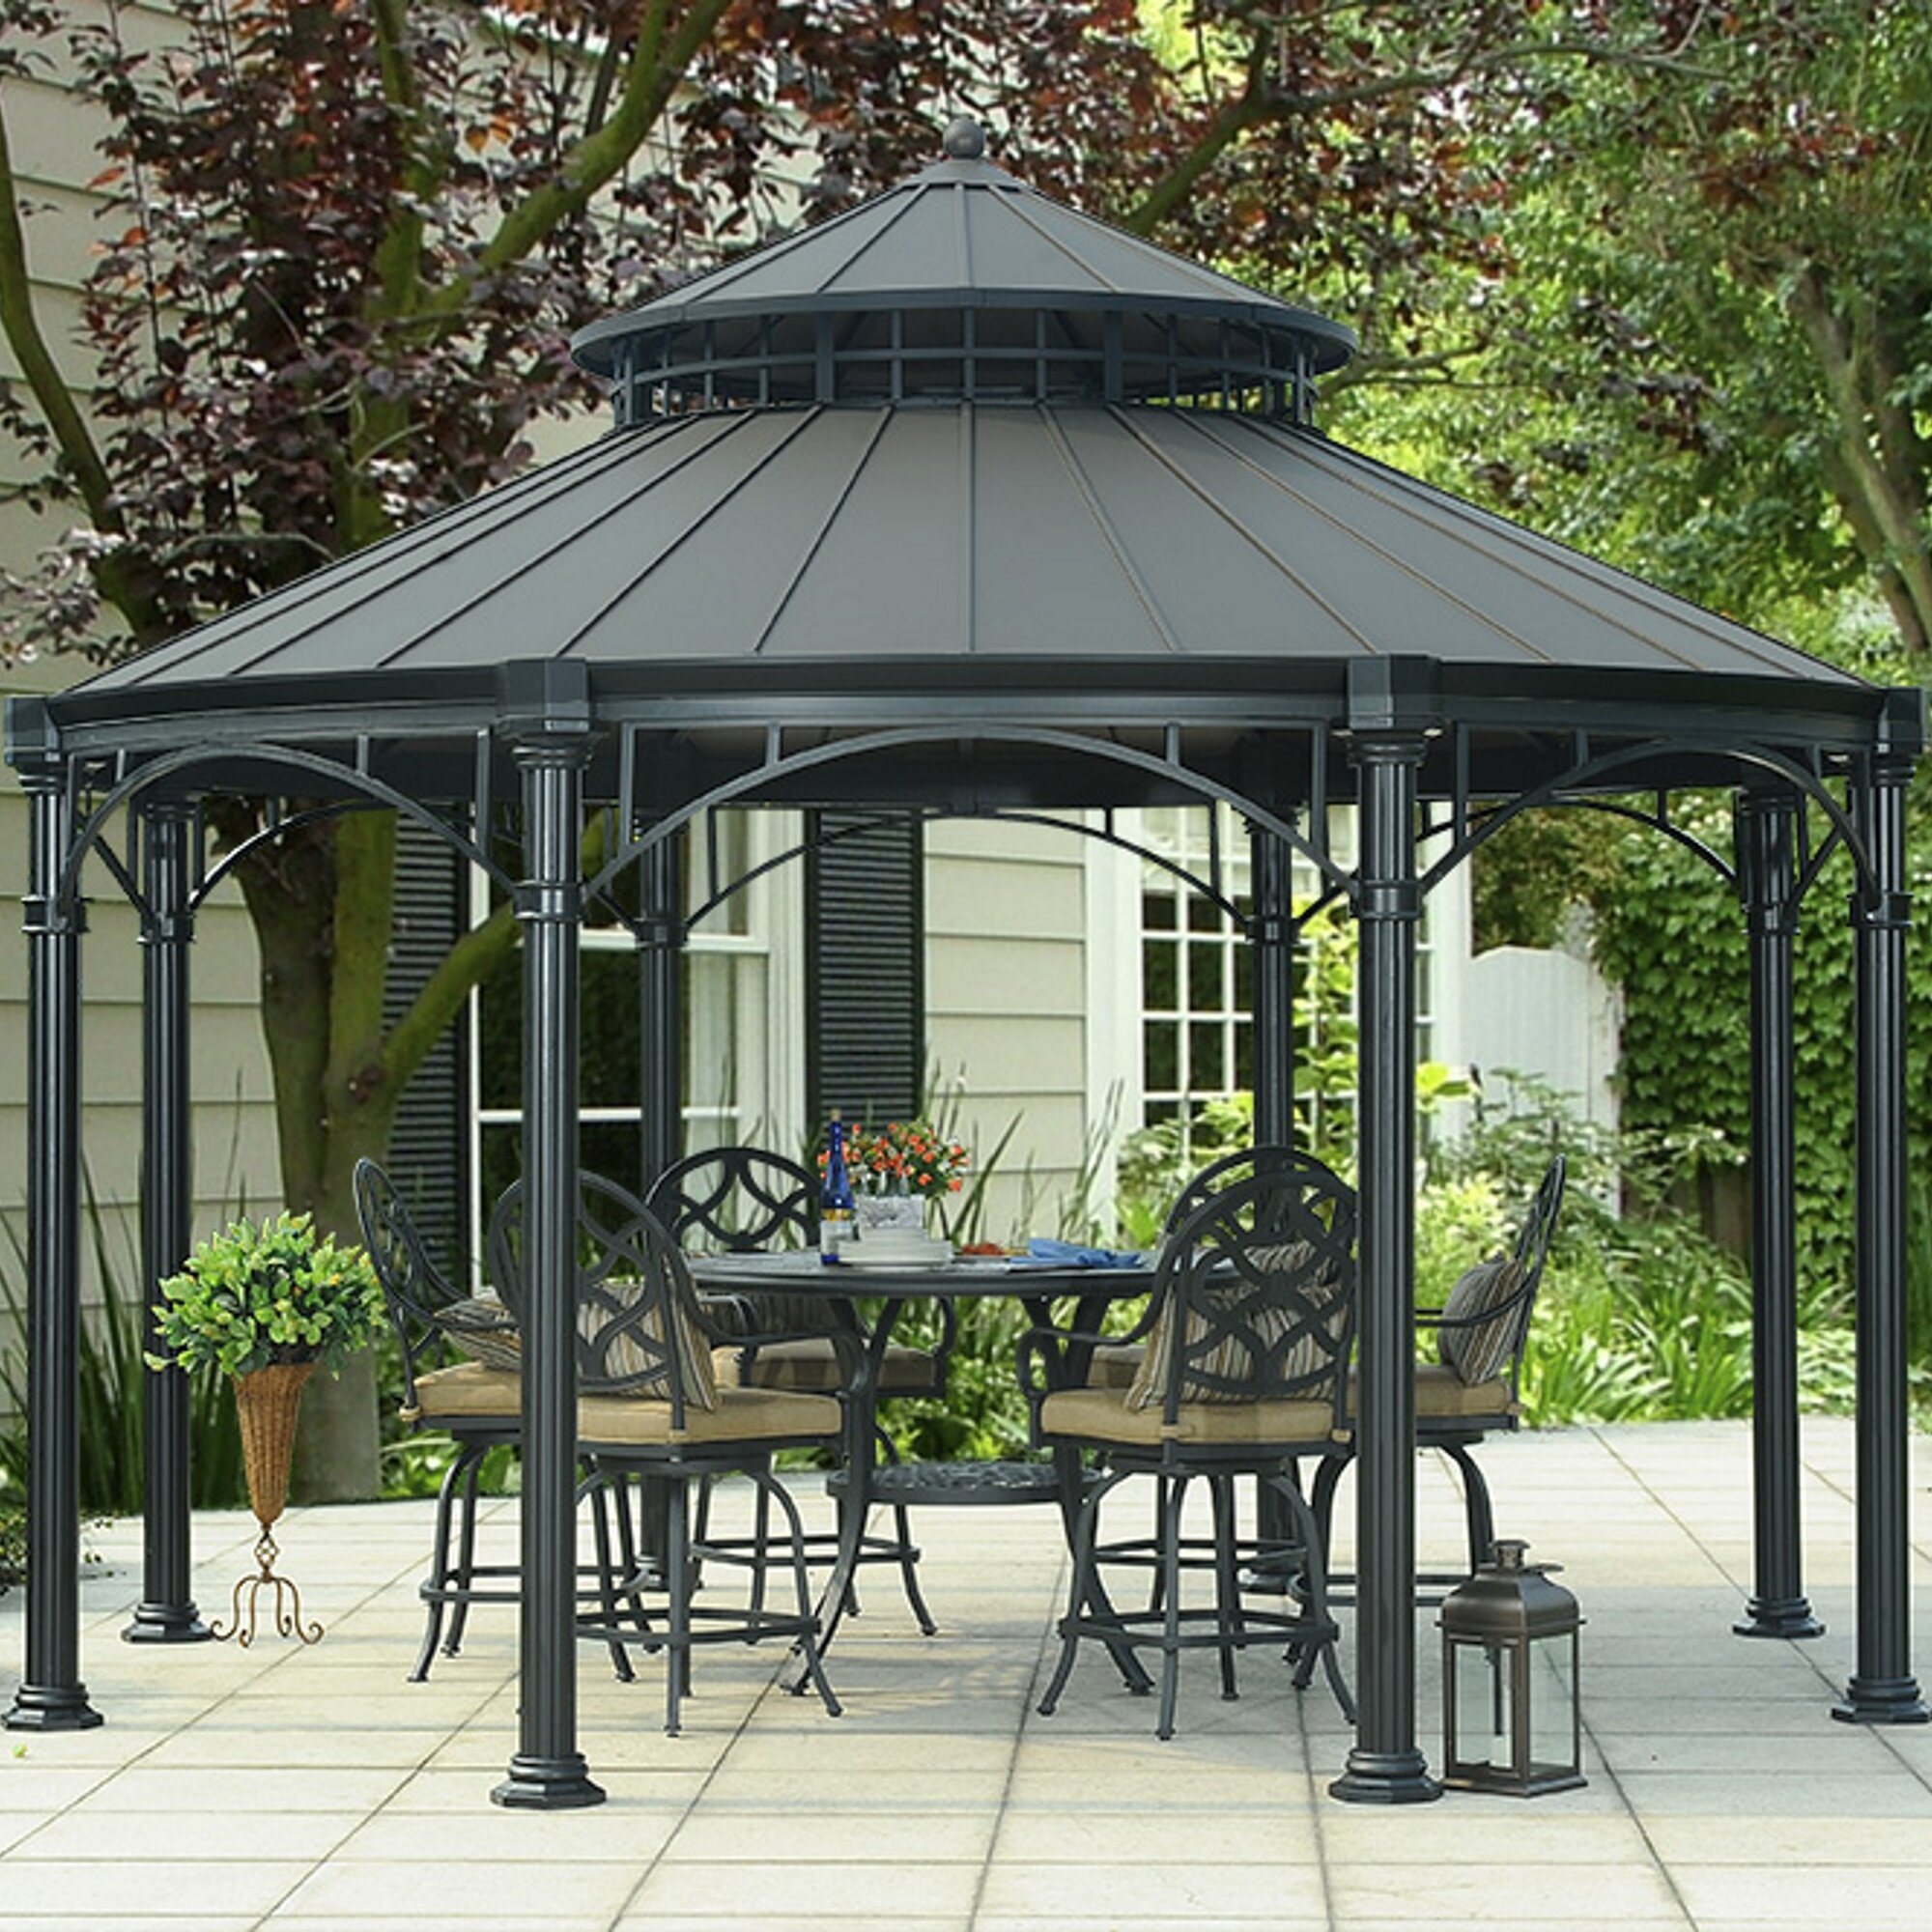 sunjoy windsor 14 ft w x 14 ft d metal permanent gazebo. Black Bedroom Furniture Sets. Home Design Ideas